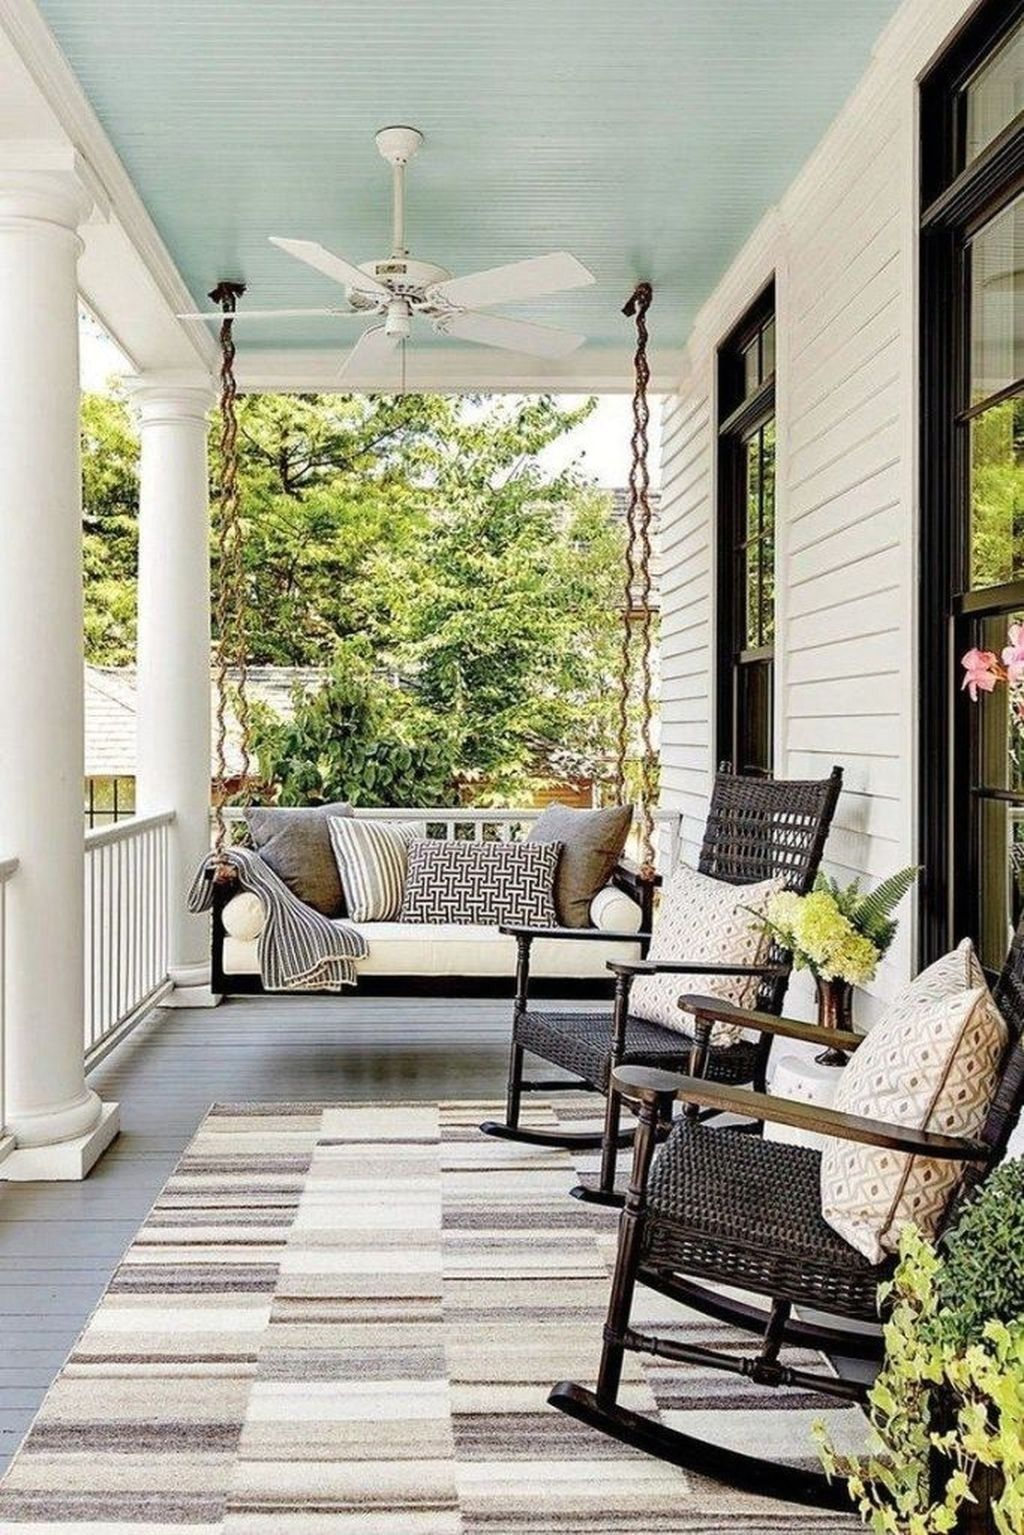 71 Stunning Farmhouse Porch Decor Ideas In 2020 With Images Porch Furniture Front Porch Furniture Farmhouse Front Porches